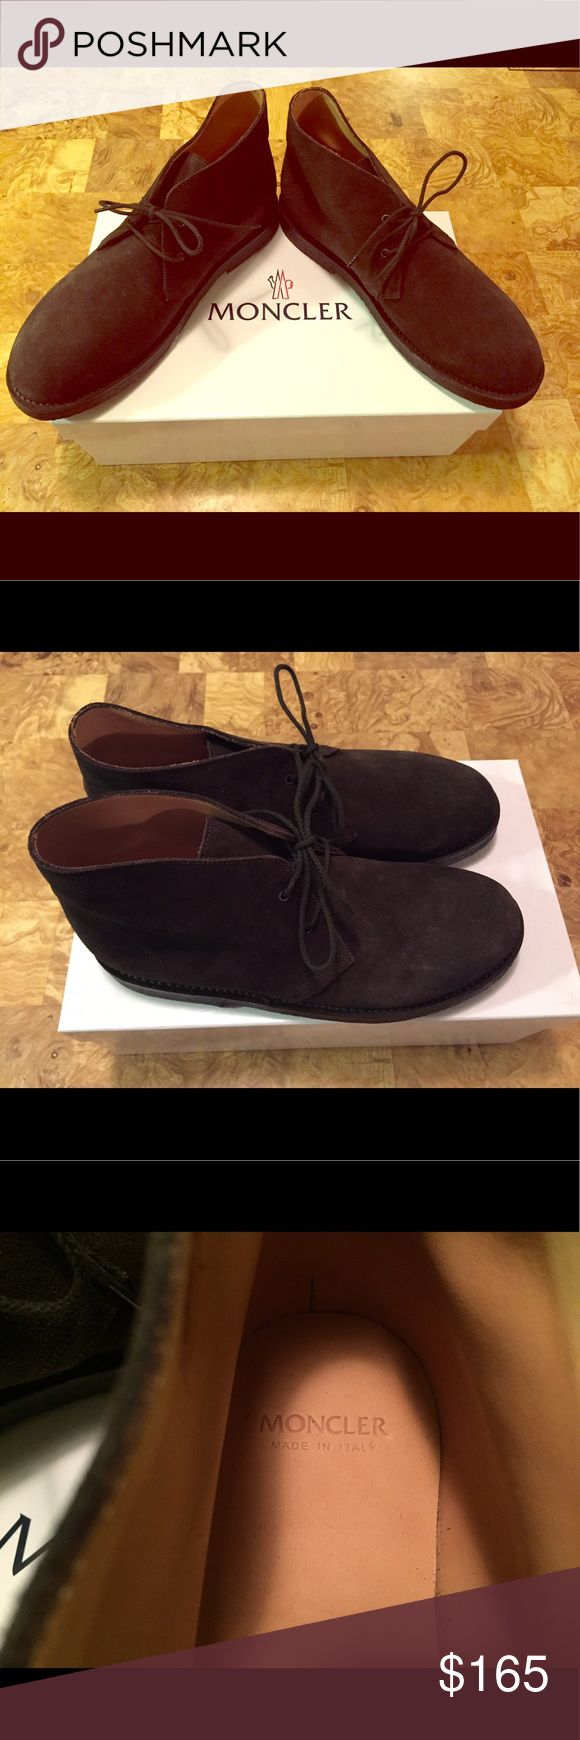 Moncler shoes Suede dark brown shoes. Worn maybe once or none. Perfect conditions and orinal box with packing tissue. Dust bag included. Moncler Shoes Ankle Boots & Booties